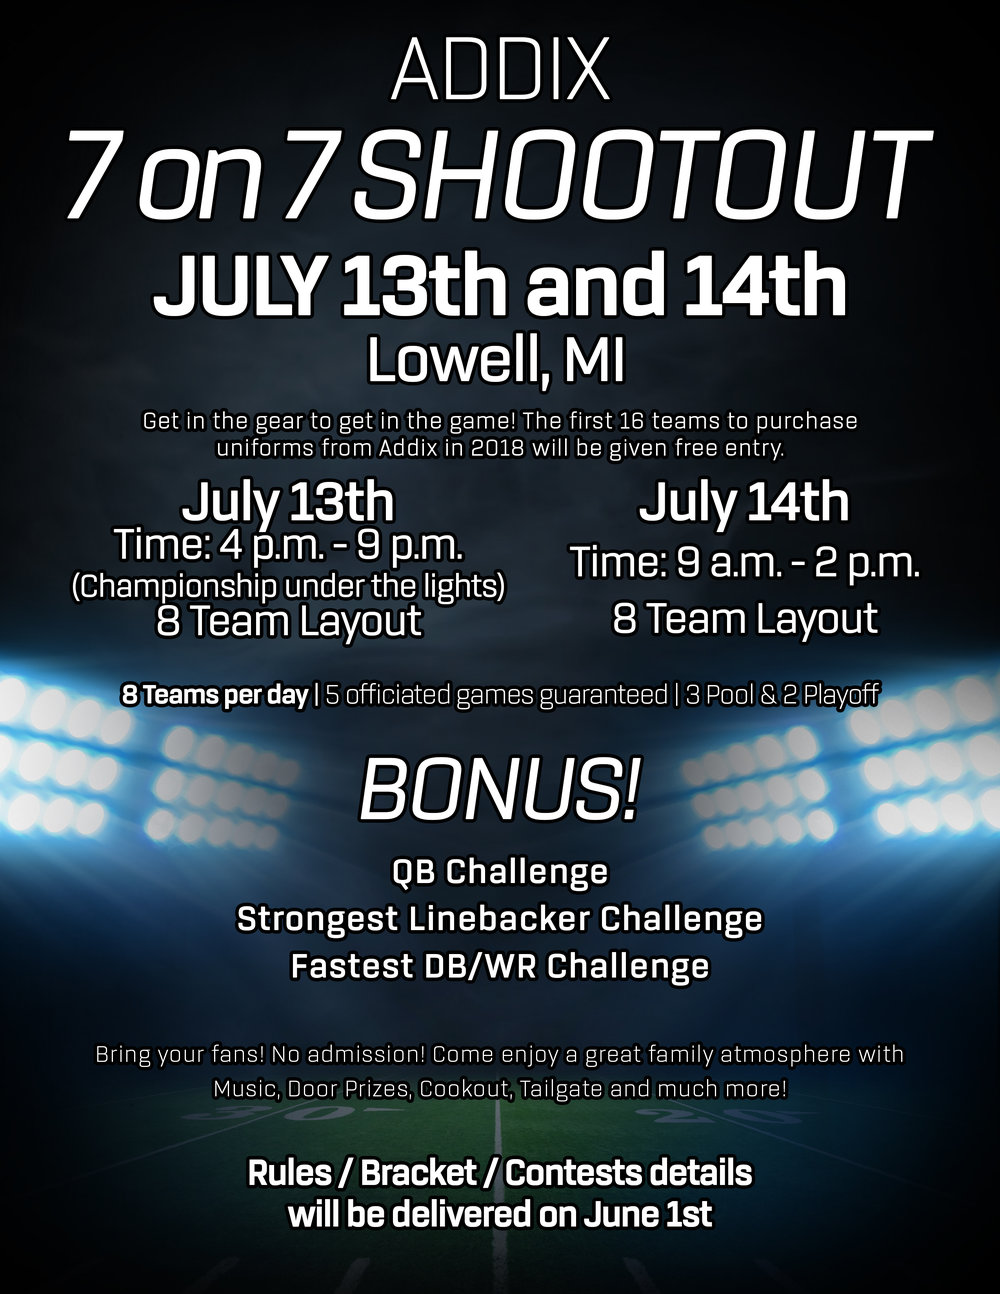 Get Your Program in the 7 on 7 Shootout! - The first 16 teams to purchase uniforms from addix in 2018 will receive FREE entry.